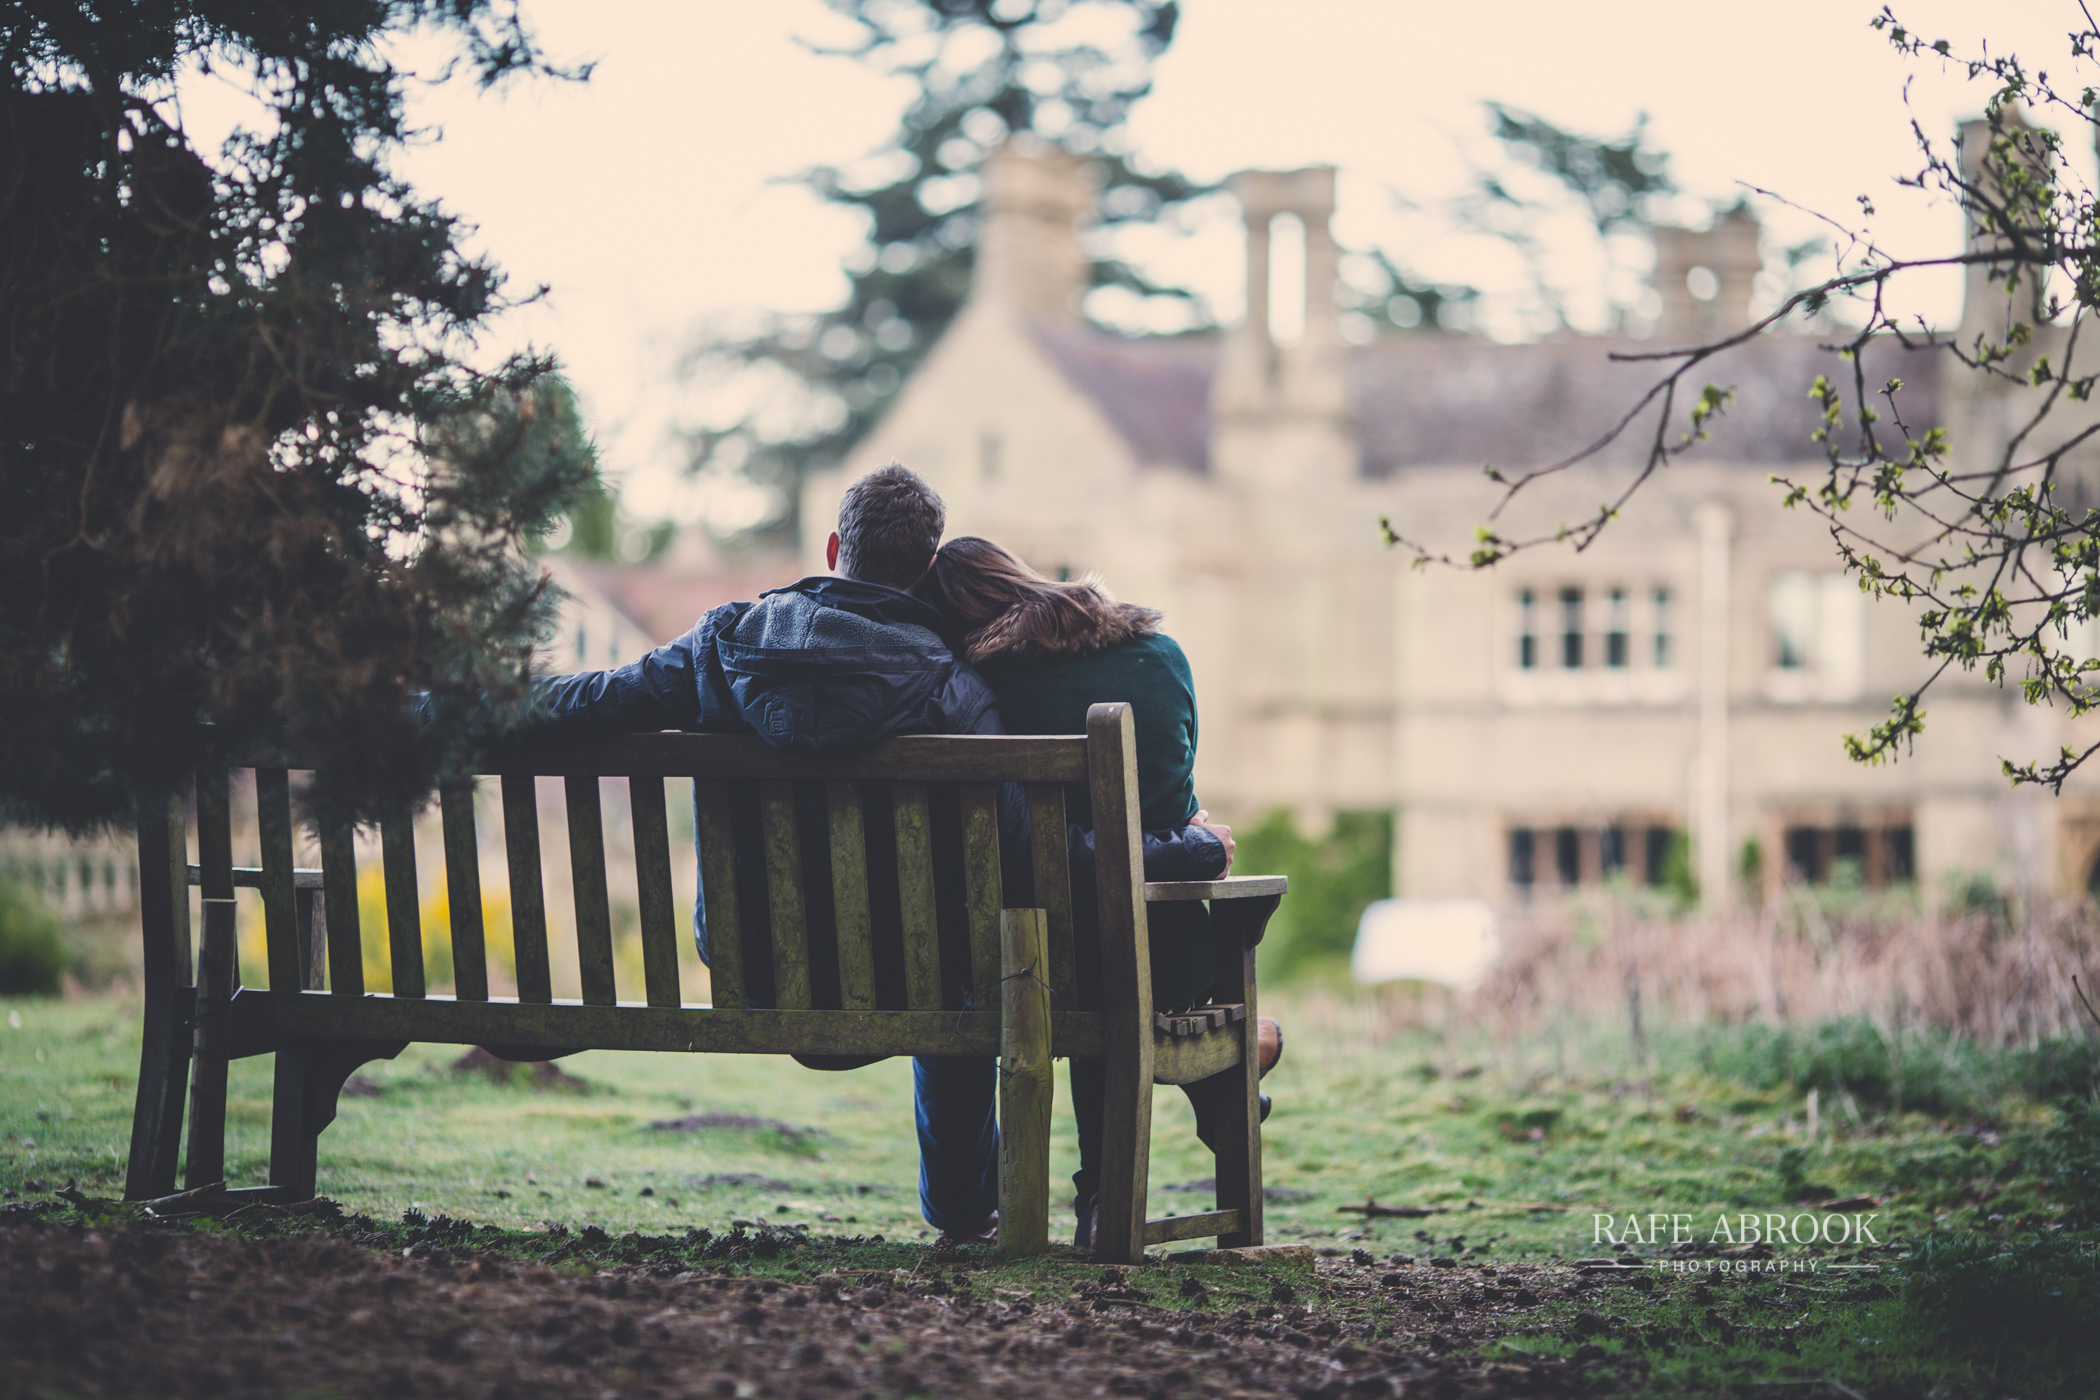 jon & laura engagement shoot rspb the lodge sandy bedfordshire-1032.jpg